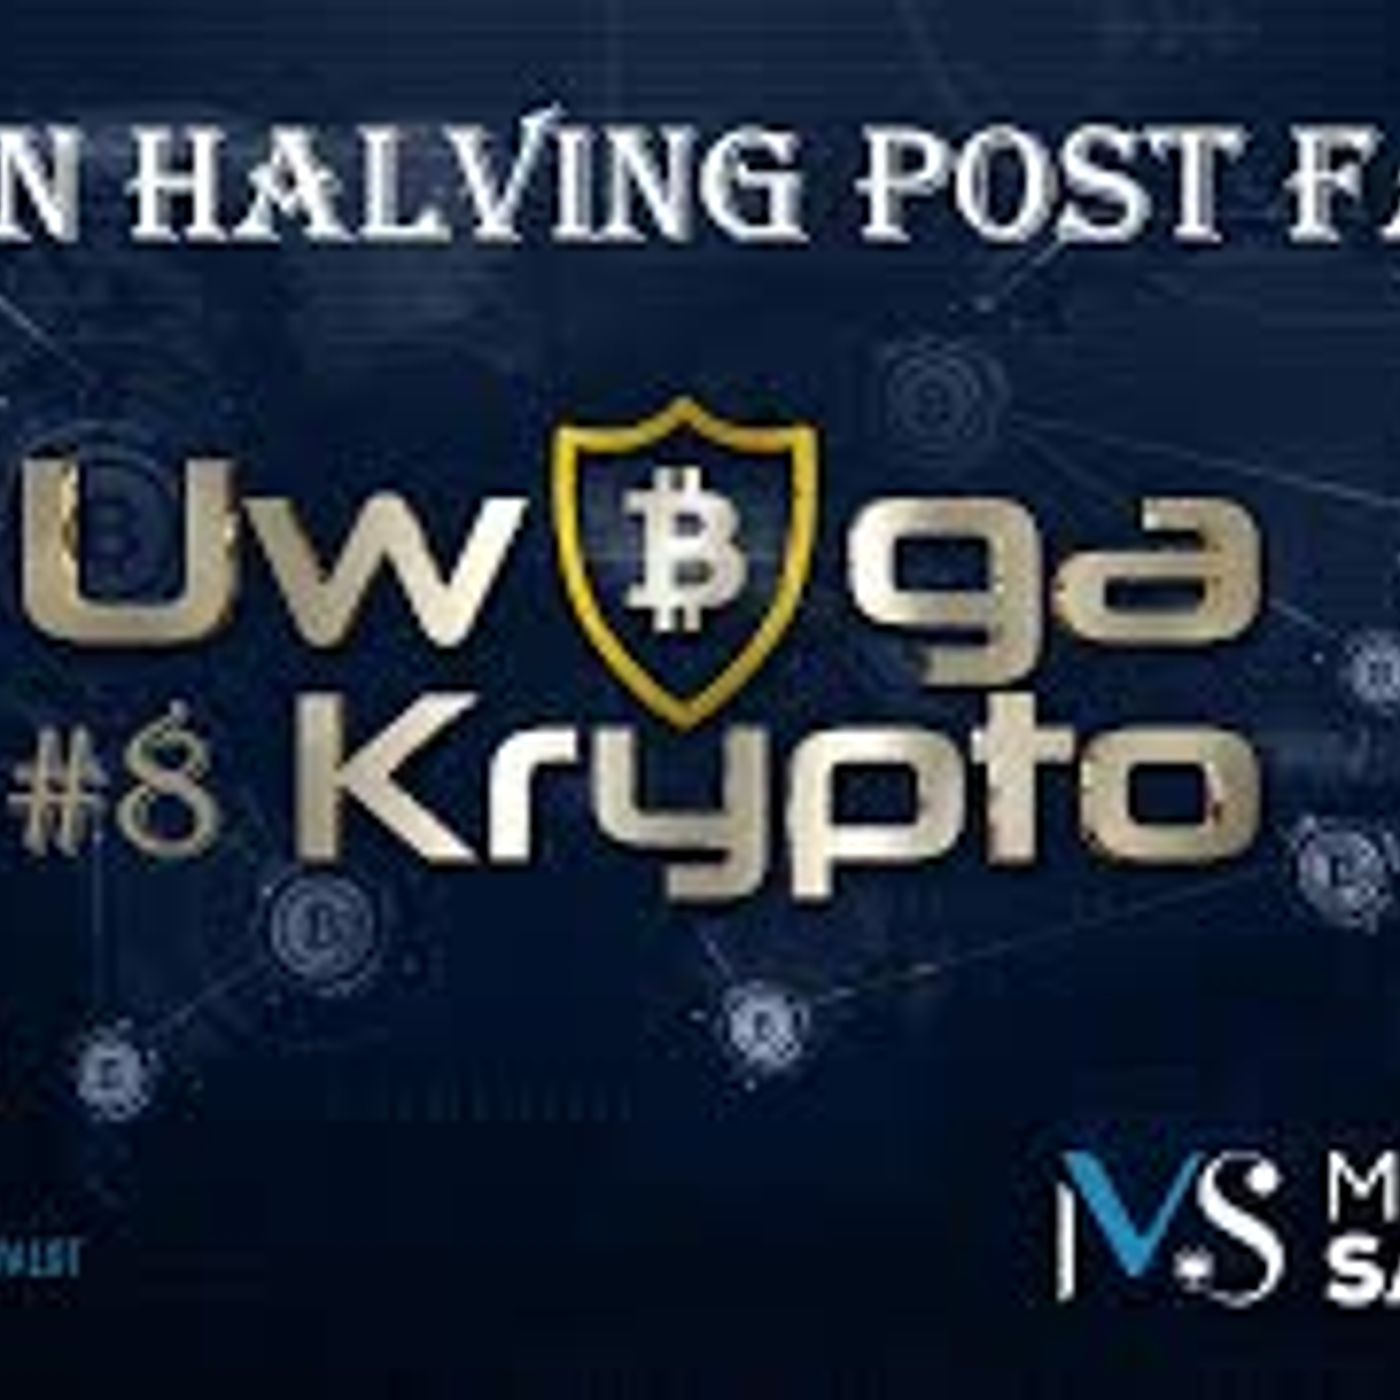 Uwaga Krypto! #9 | - Bitcoin halving - analiza post factum